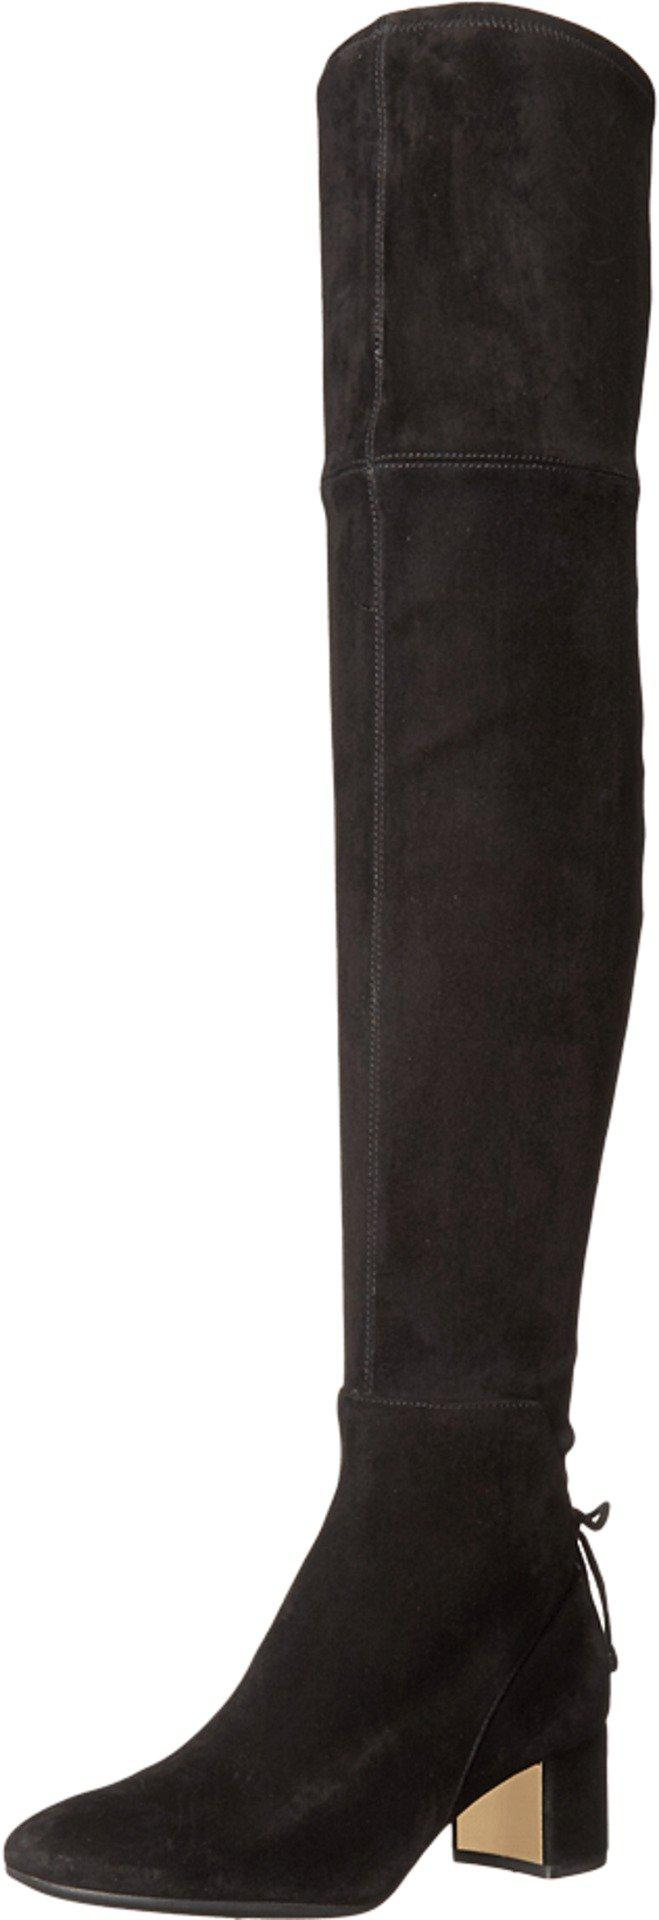 87d4a717240 Lyst - Tory Burch Laila 45mm Over The Knee in Black